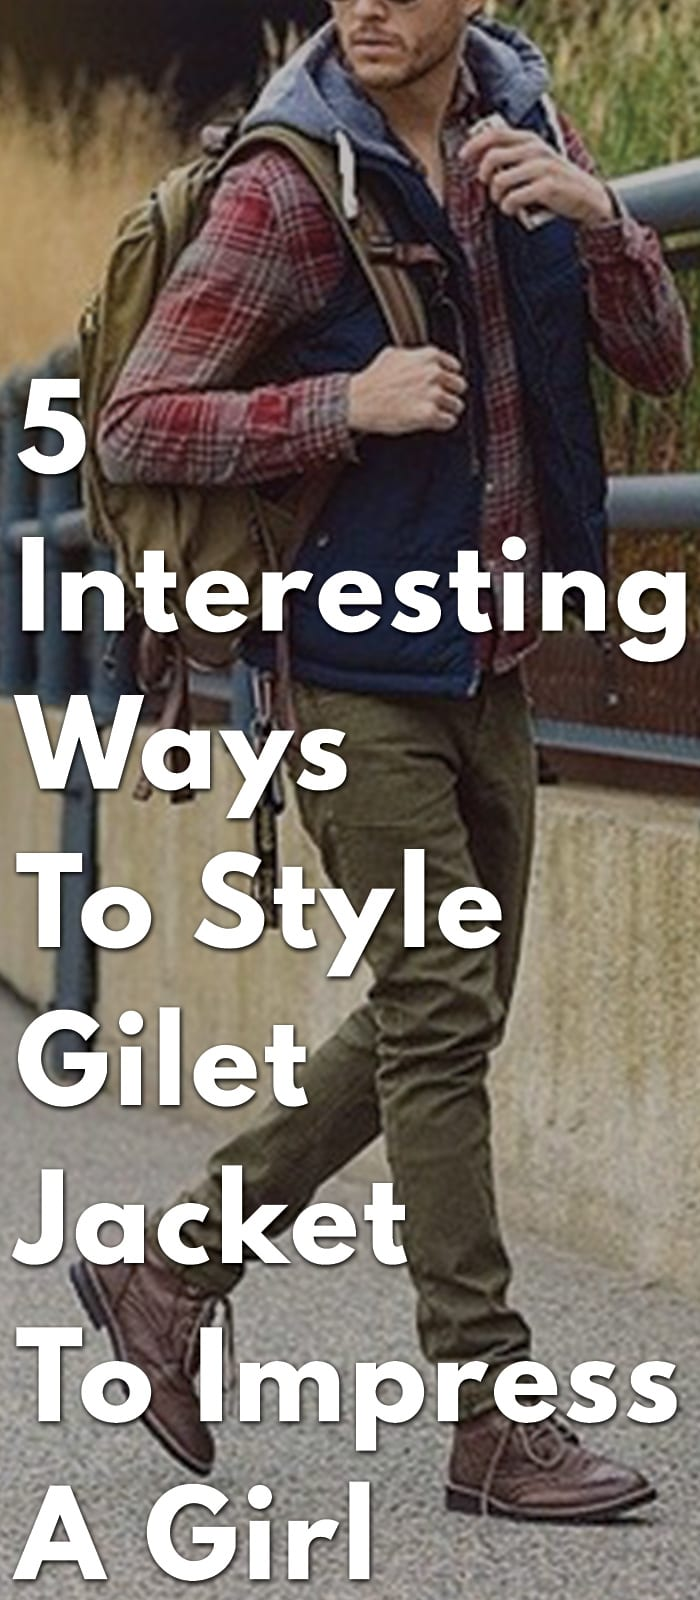 5-Interesting-Ways-To-Style-Gilet-Jacket-To-Impress-A-Girl